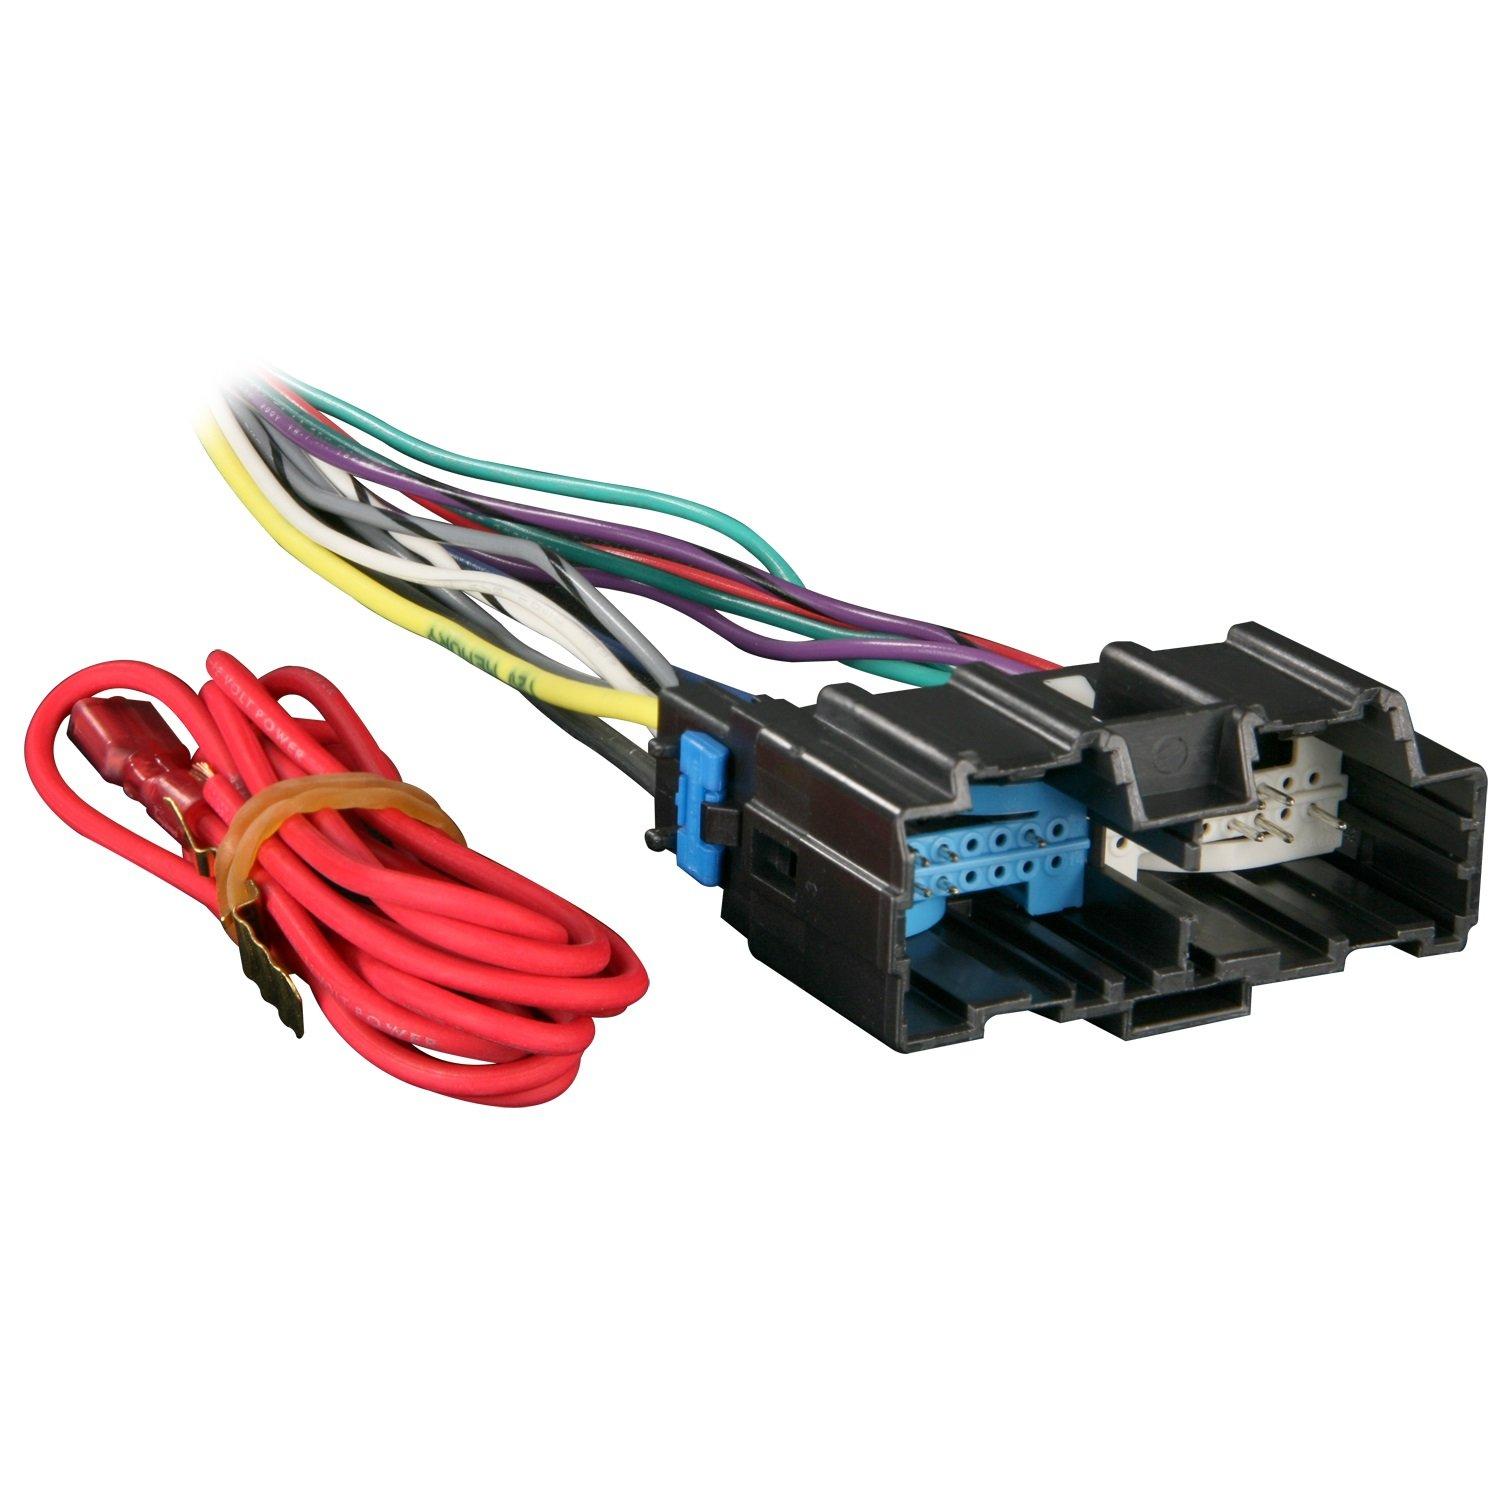 71ZzH dyg7L._SL1500_ amazon com metra 70 2105 radio wiring harness for impala monte 2008 chevy impala stereo wiring harness at gsmportal.co